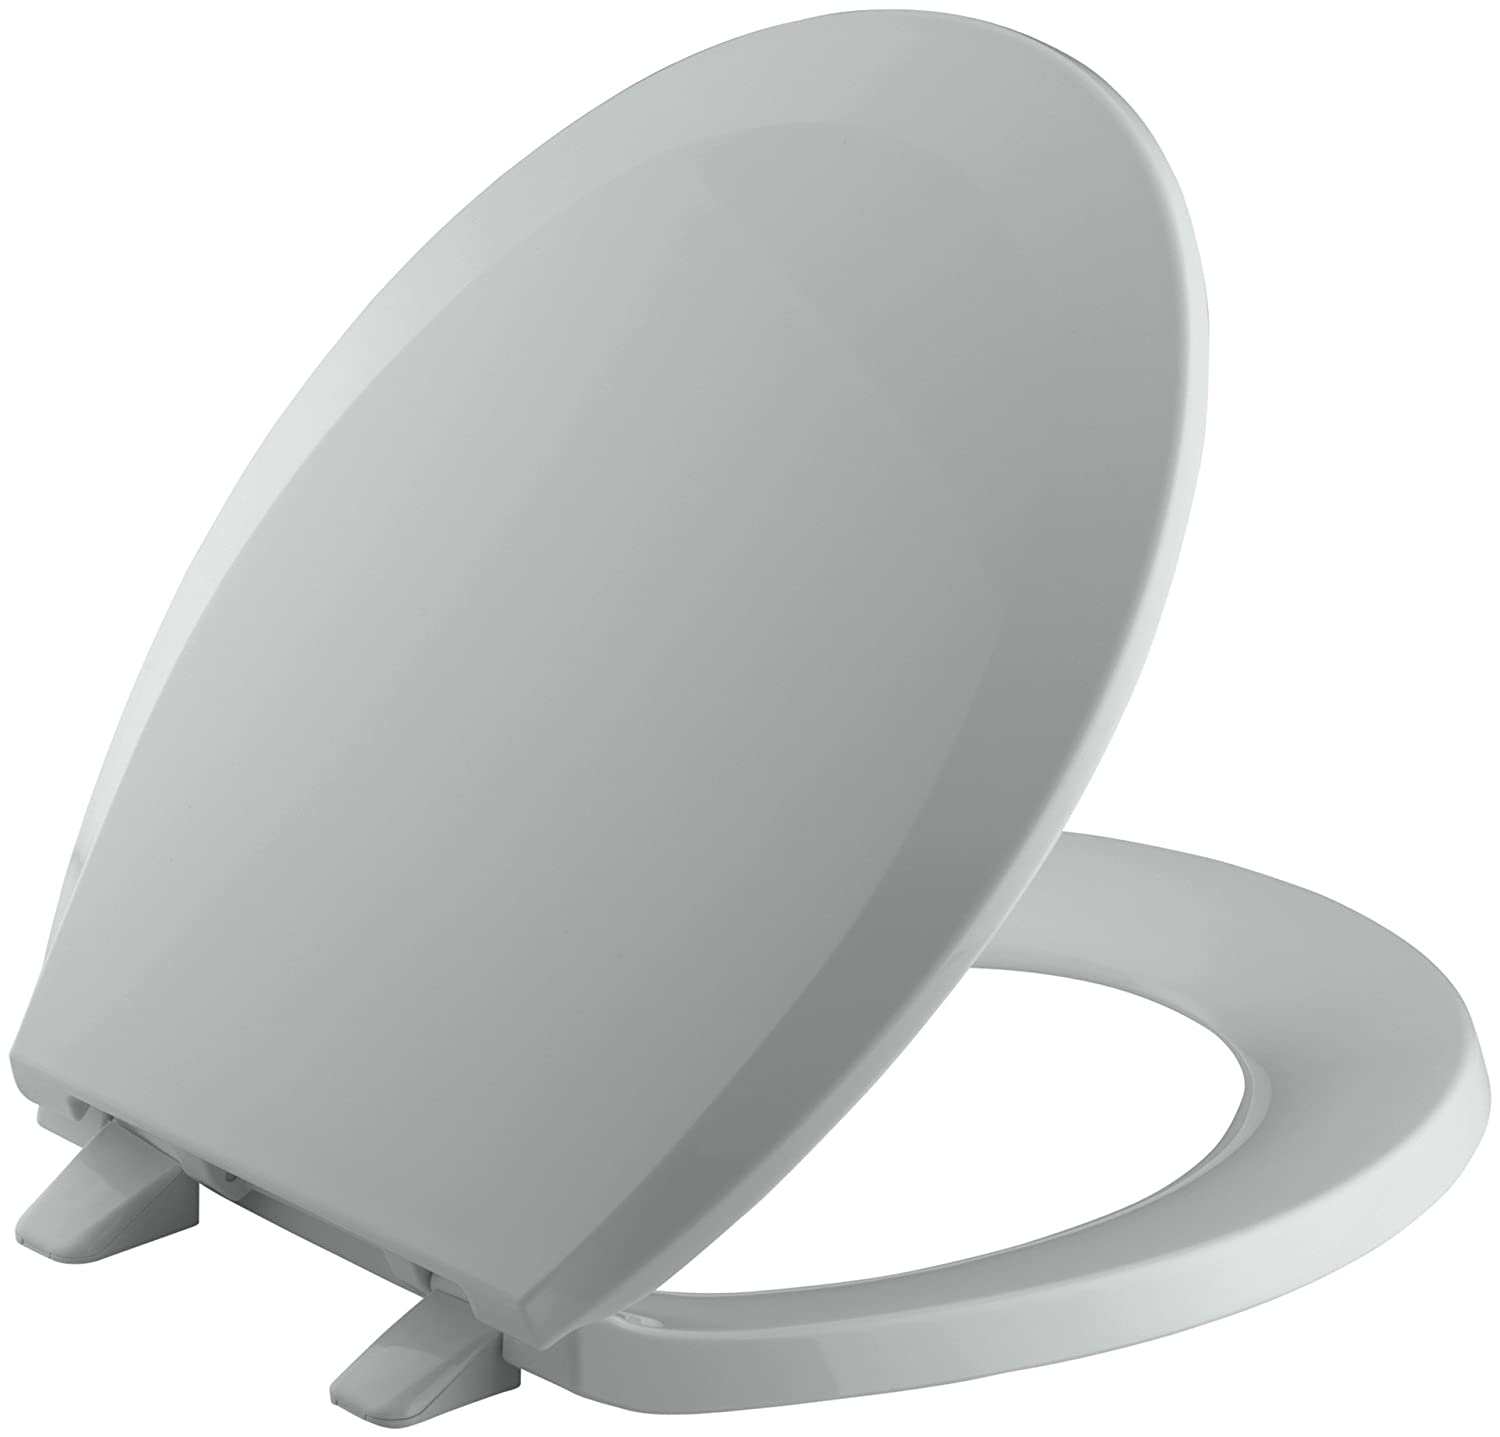 Kohler K 4662 45 Lustra With Quick Release Hinges Round Front Toilet